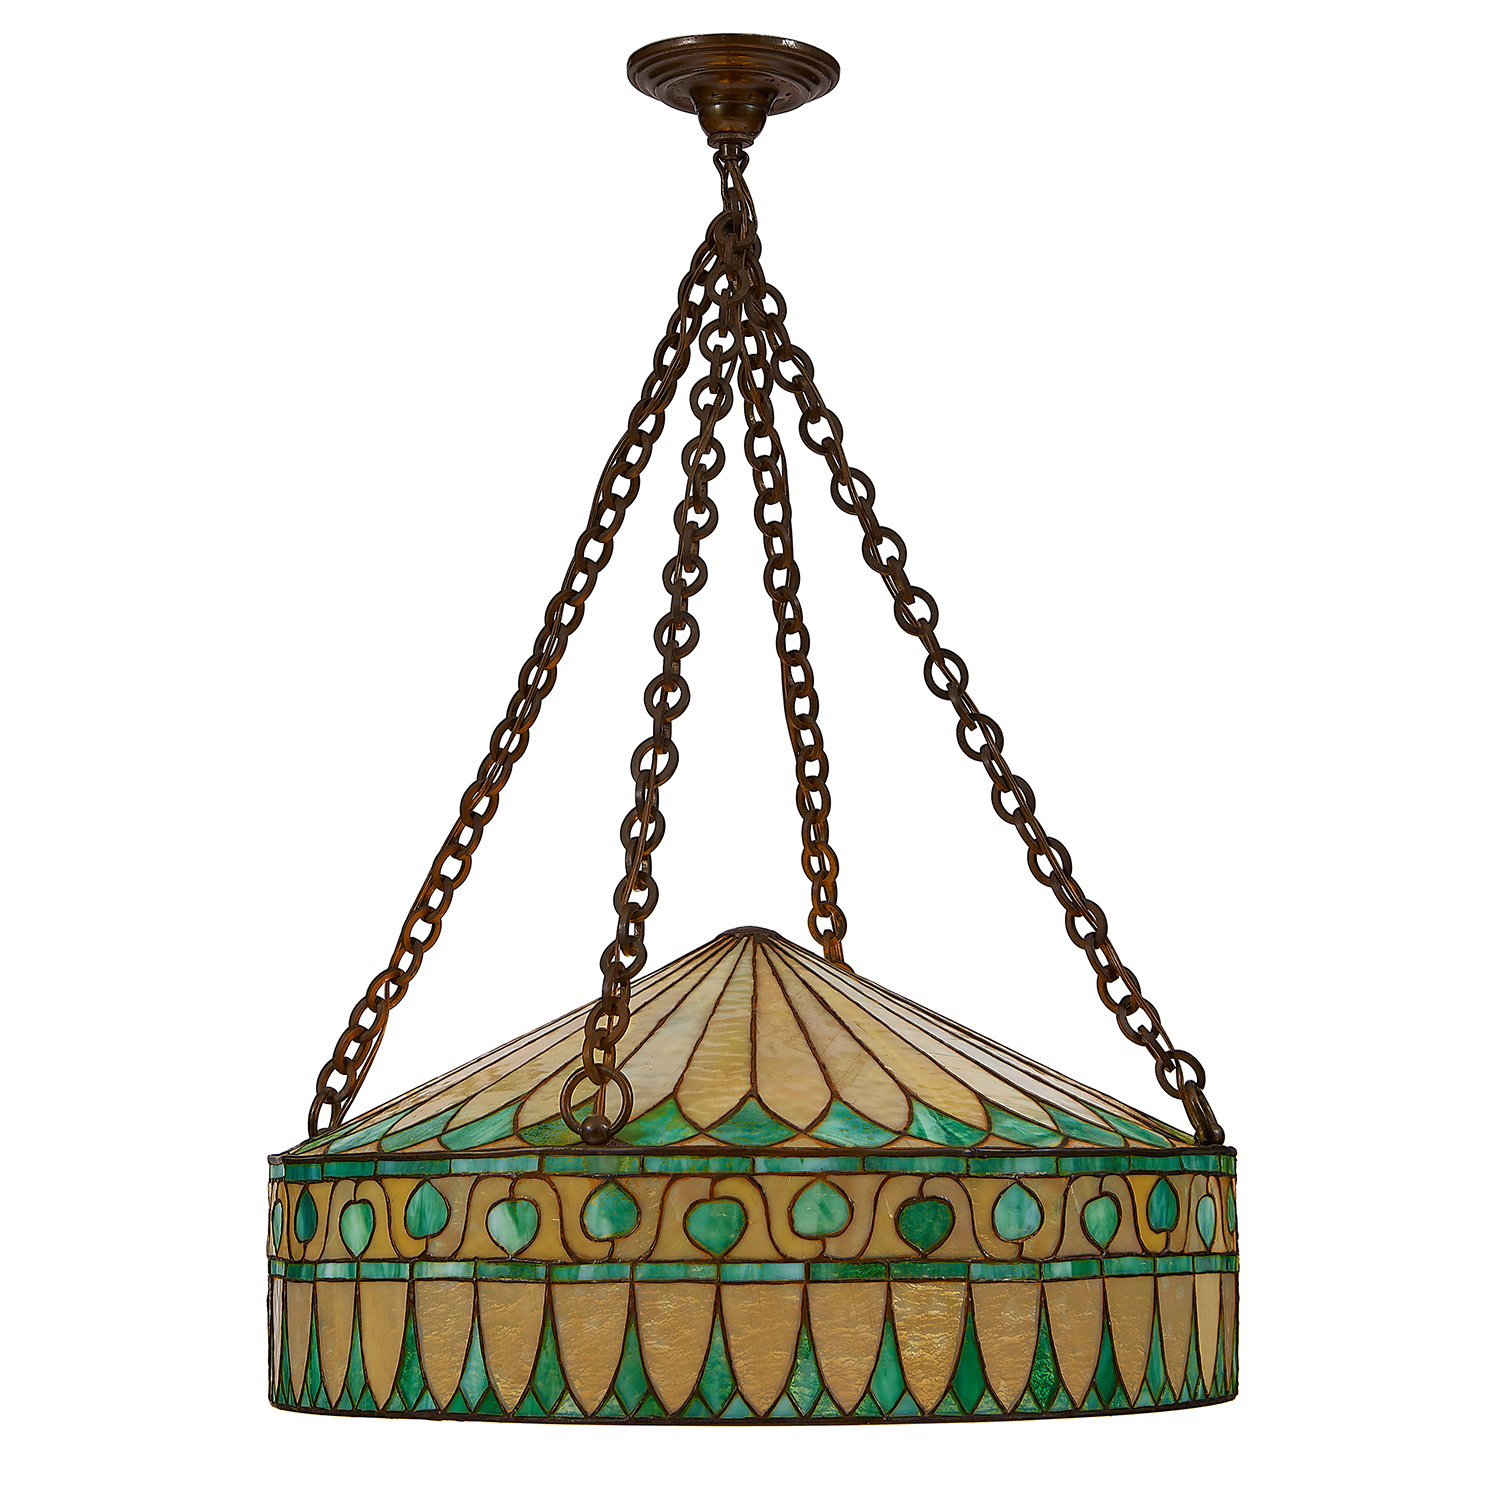 """R. Williamson & Co. hanging light fixture overall: 24""""dia x 34""""h"""